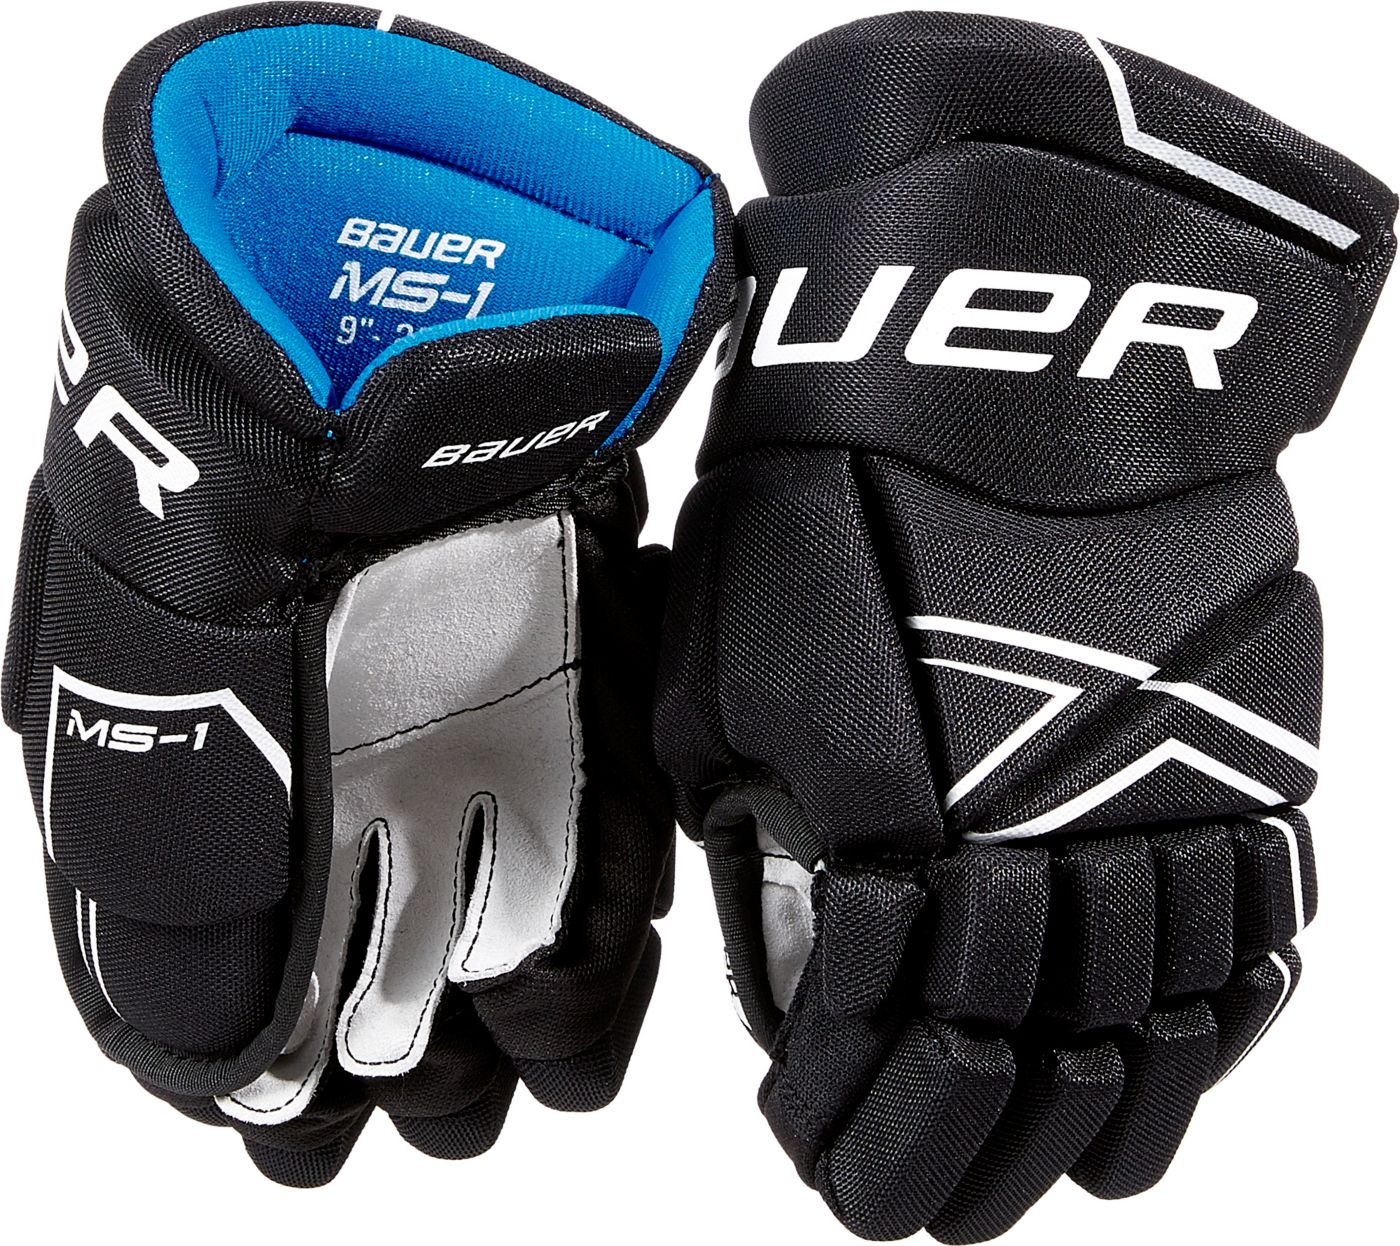 Bauer Youth MS1 Ice Hockey Gloves